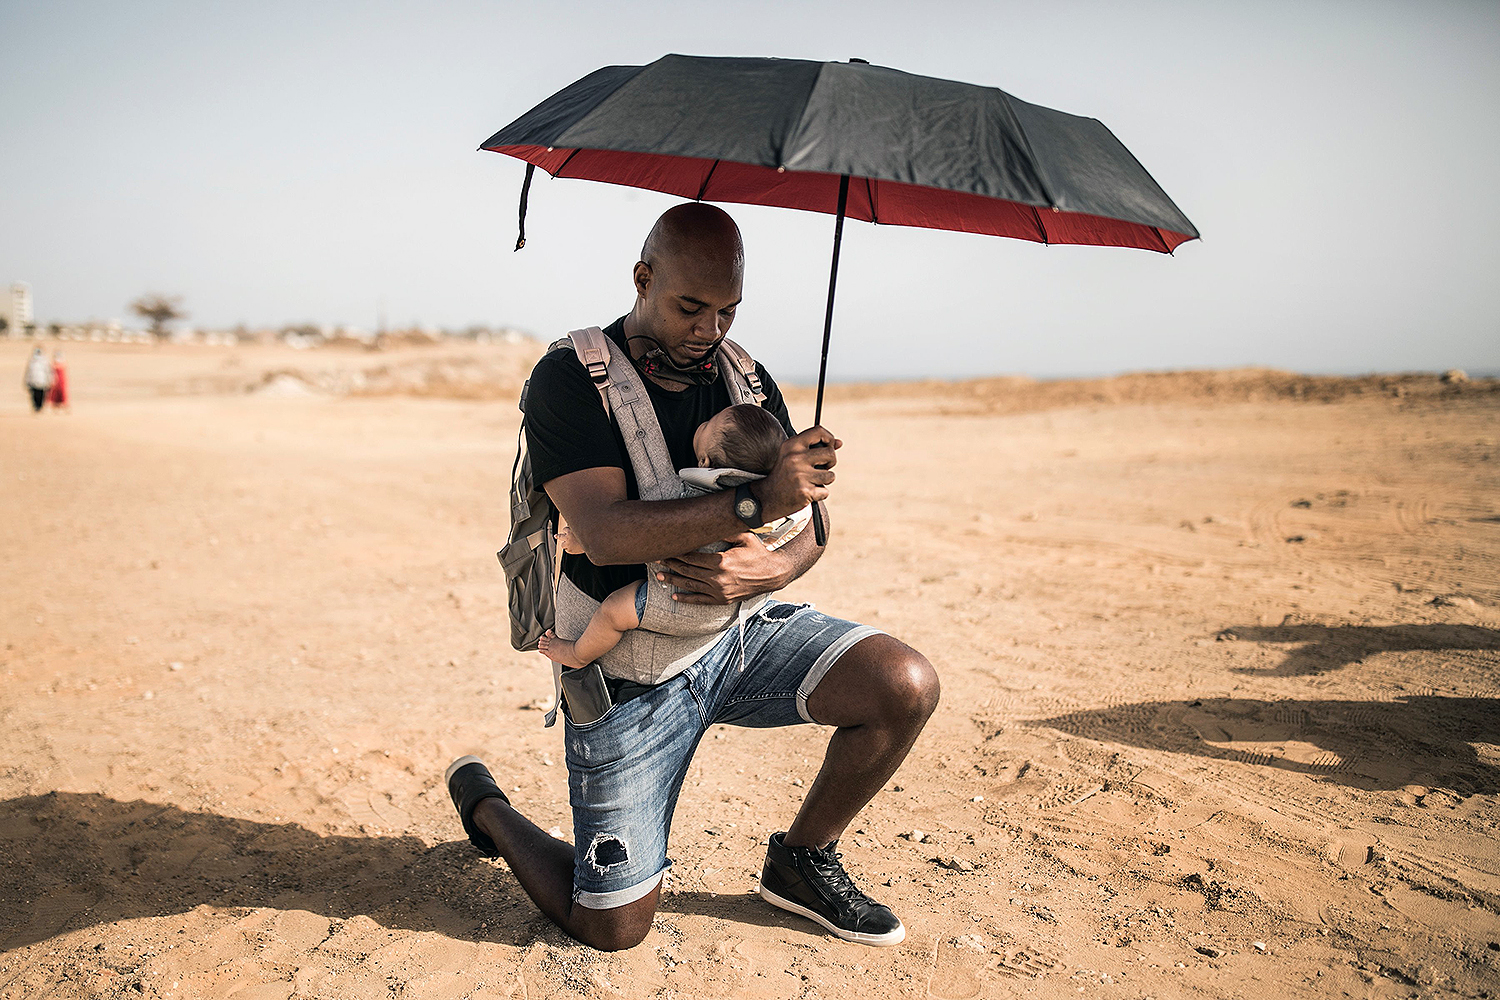 A man named Alexis kneels with his baby at a protest in solidarity with the Black Lives Matter movement in Dakar, Senegal, on June 9. JOHN WESSELS/AFP via Getty Images